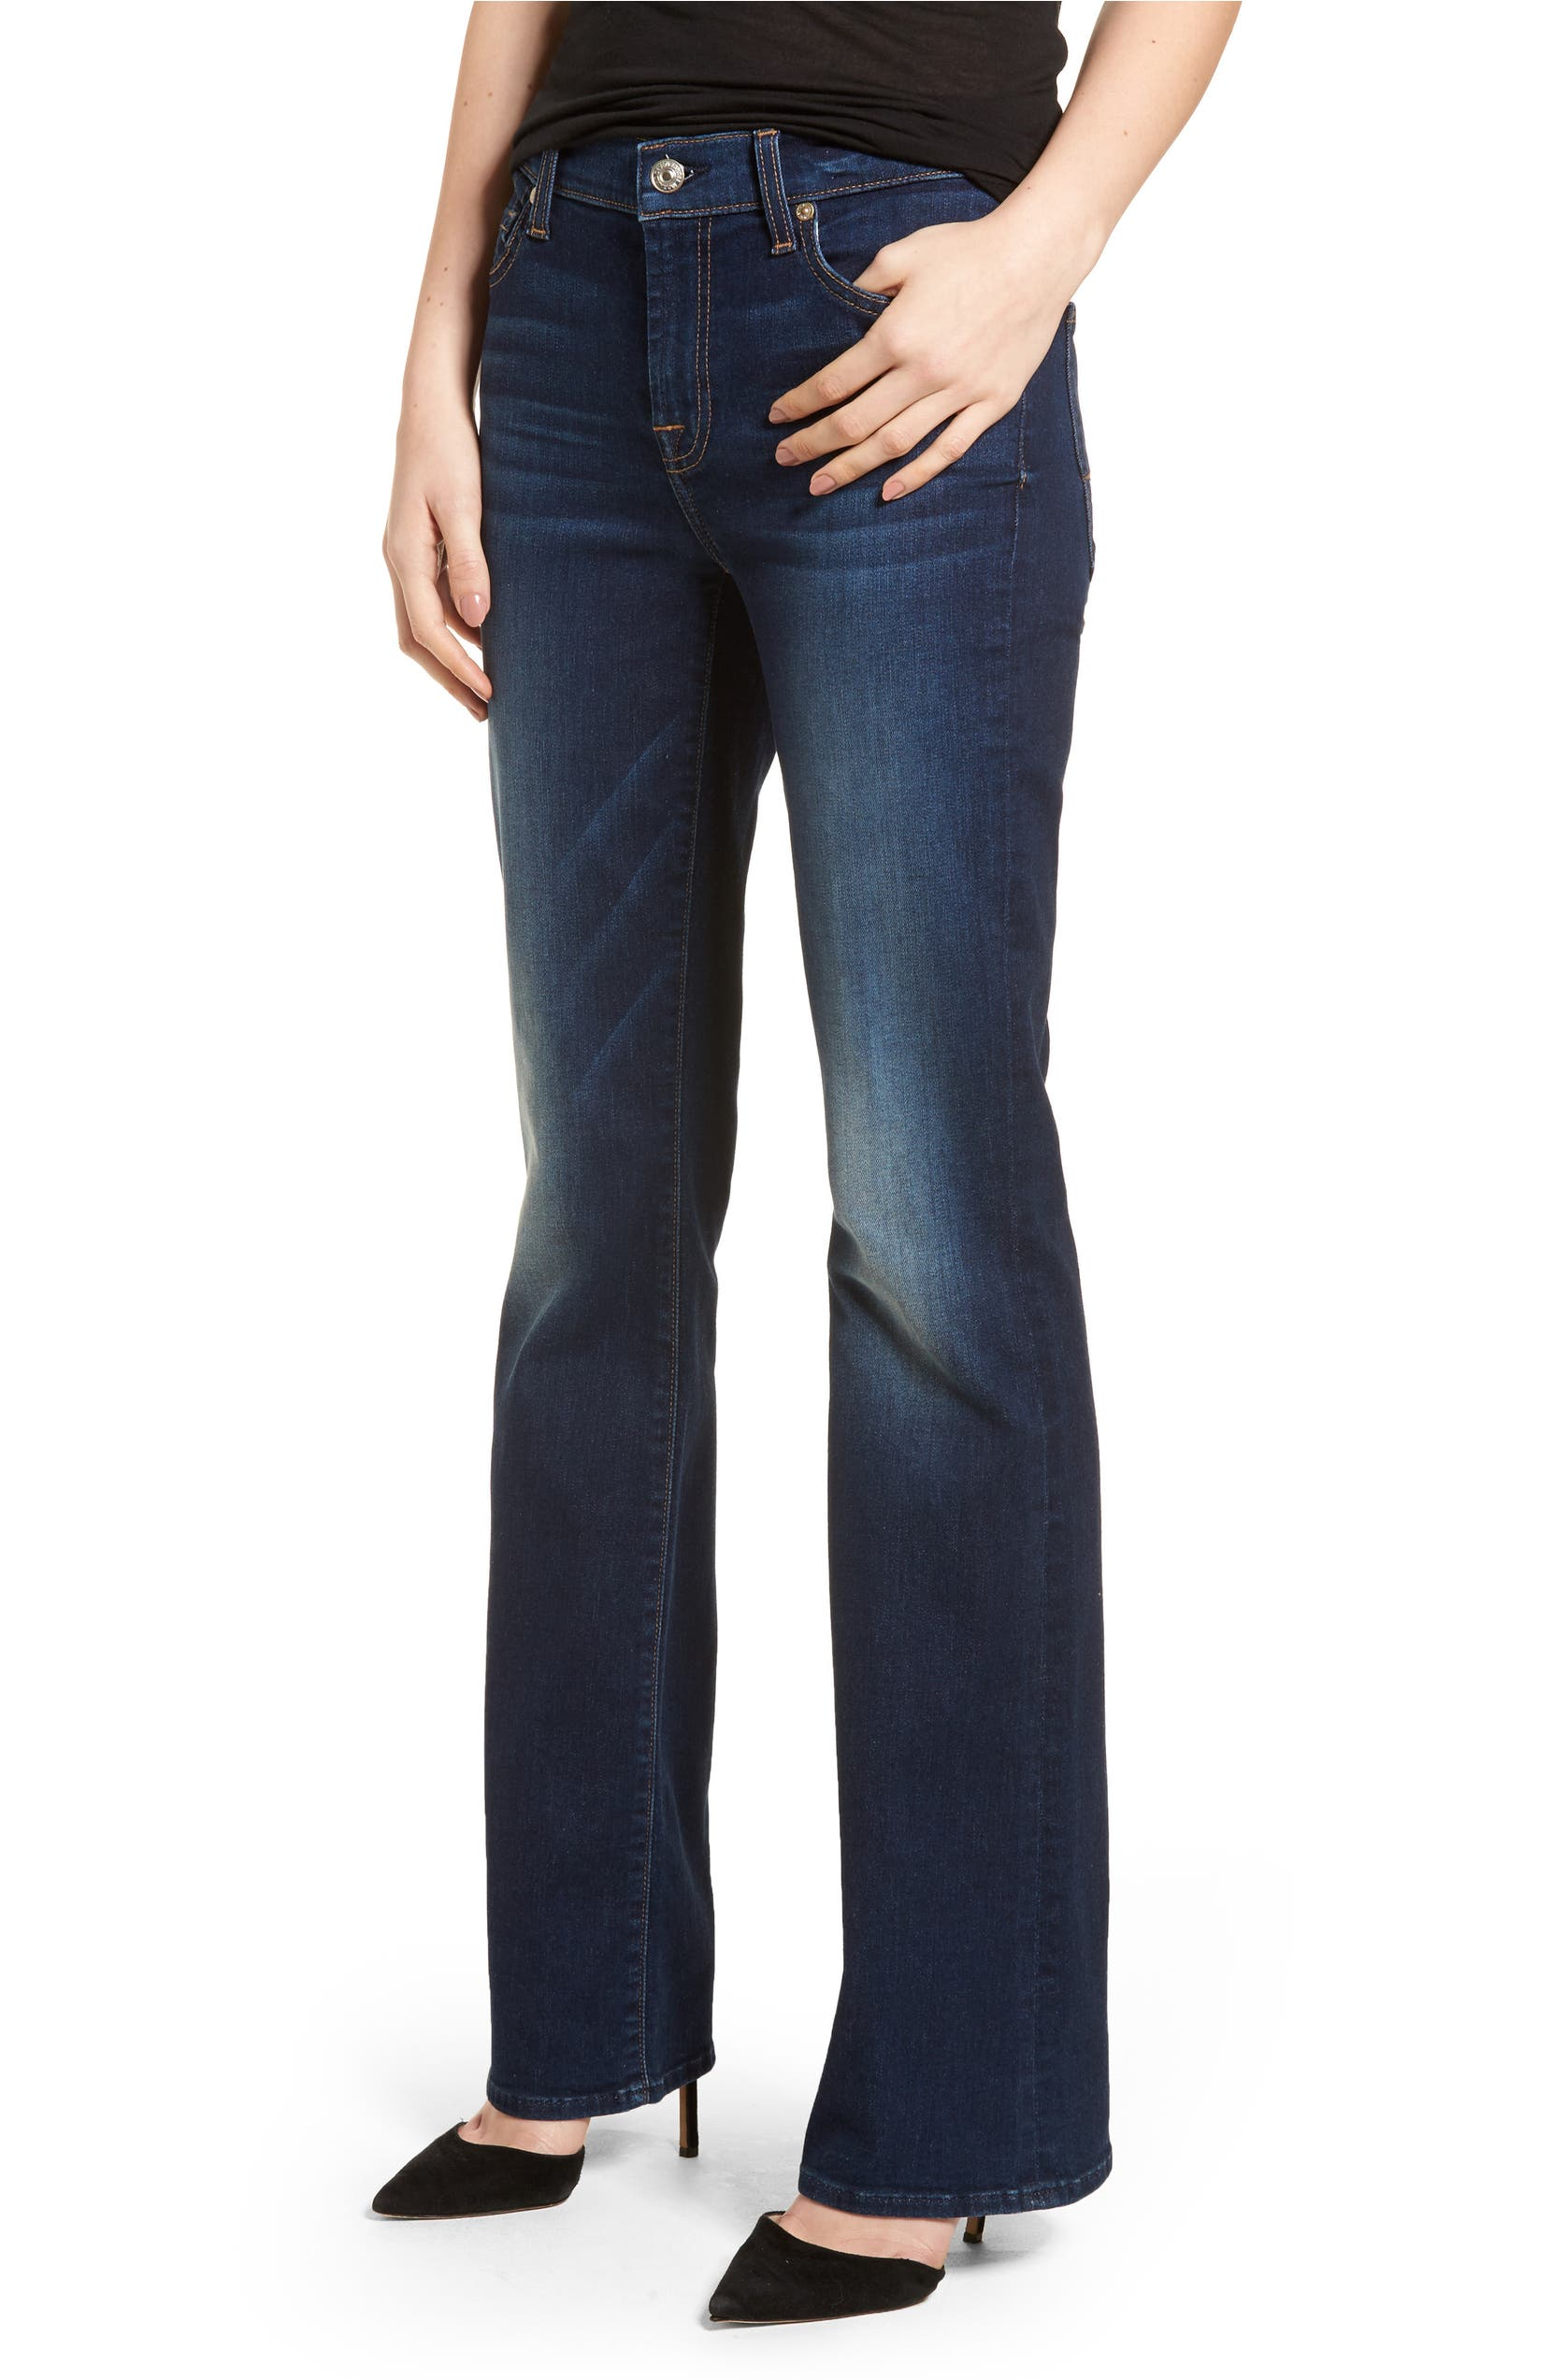 another chance detailed pictures official supplier b(air) Tailorless Iconic Bootcut Jeans